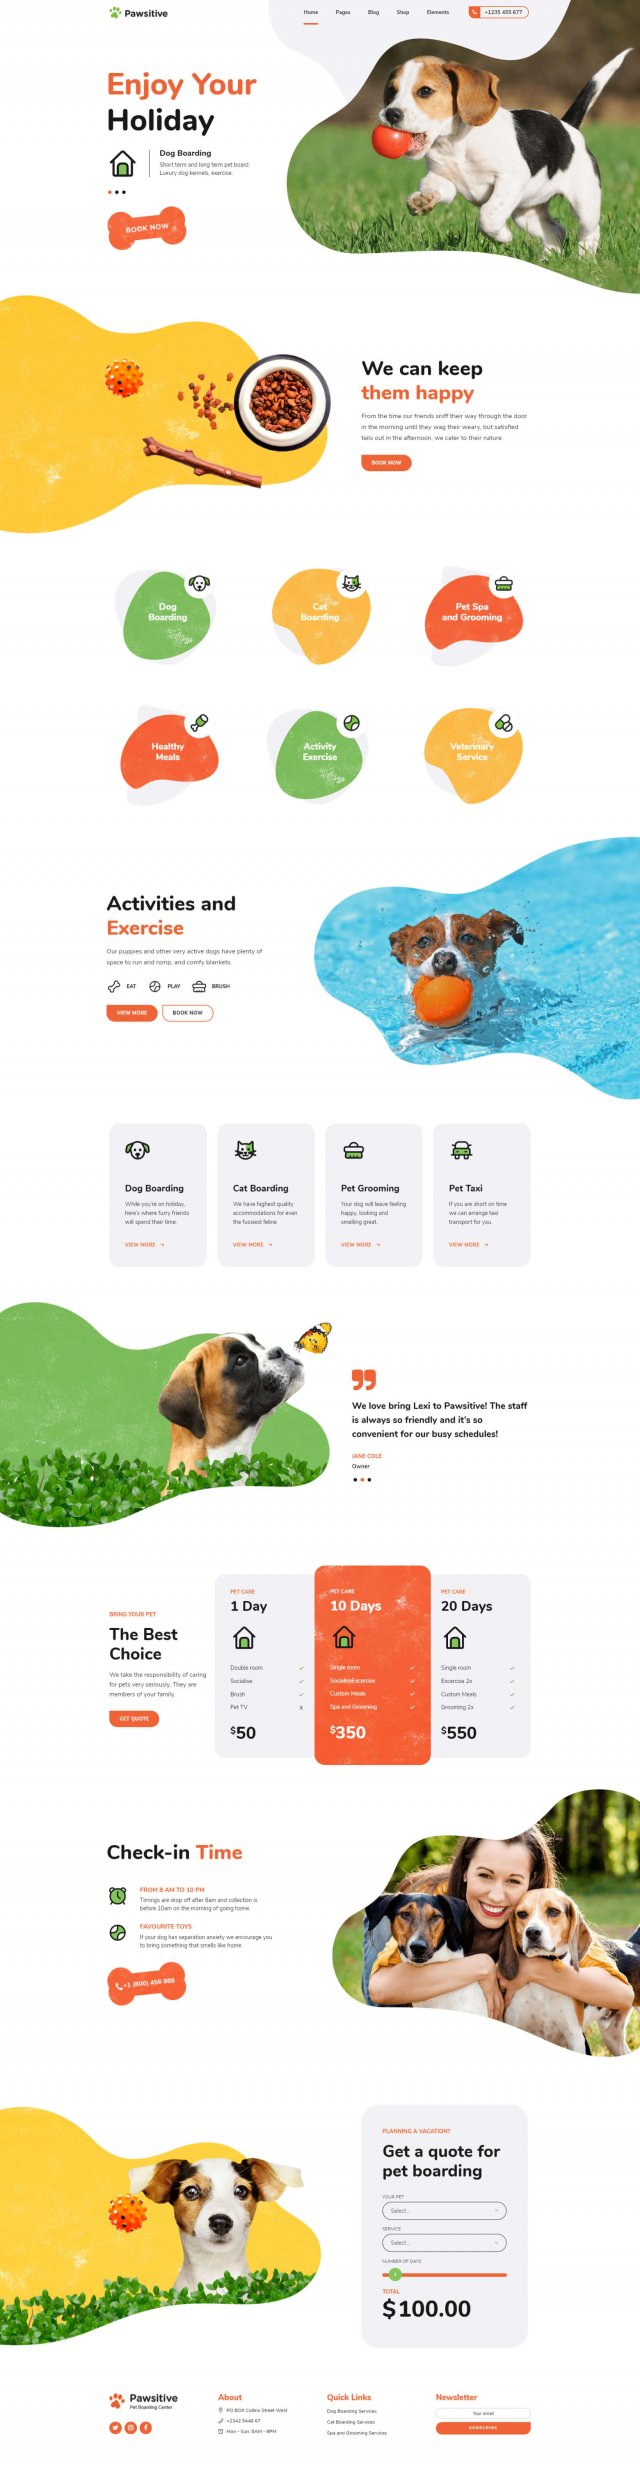 http://pawsitive.bold-themes.com/wp-content/uploads/2019/09/Buddy-Home-01-640x2466.jpg